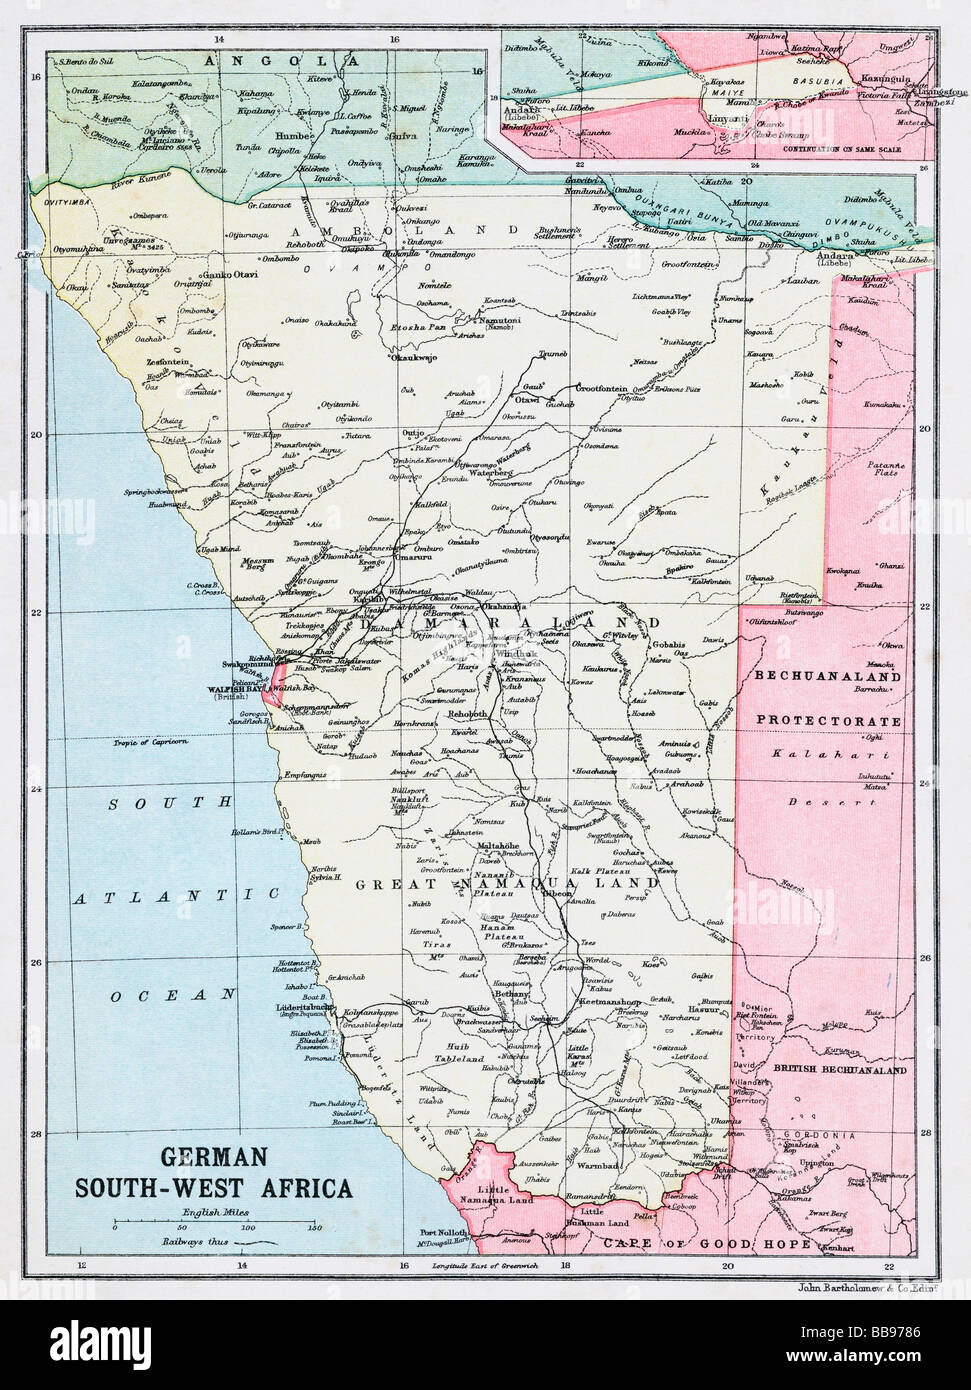 Map of german south west africa at beginning of first world war map of german south west africa at beginning of first world war gumiabroncs Image collections